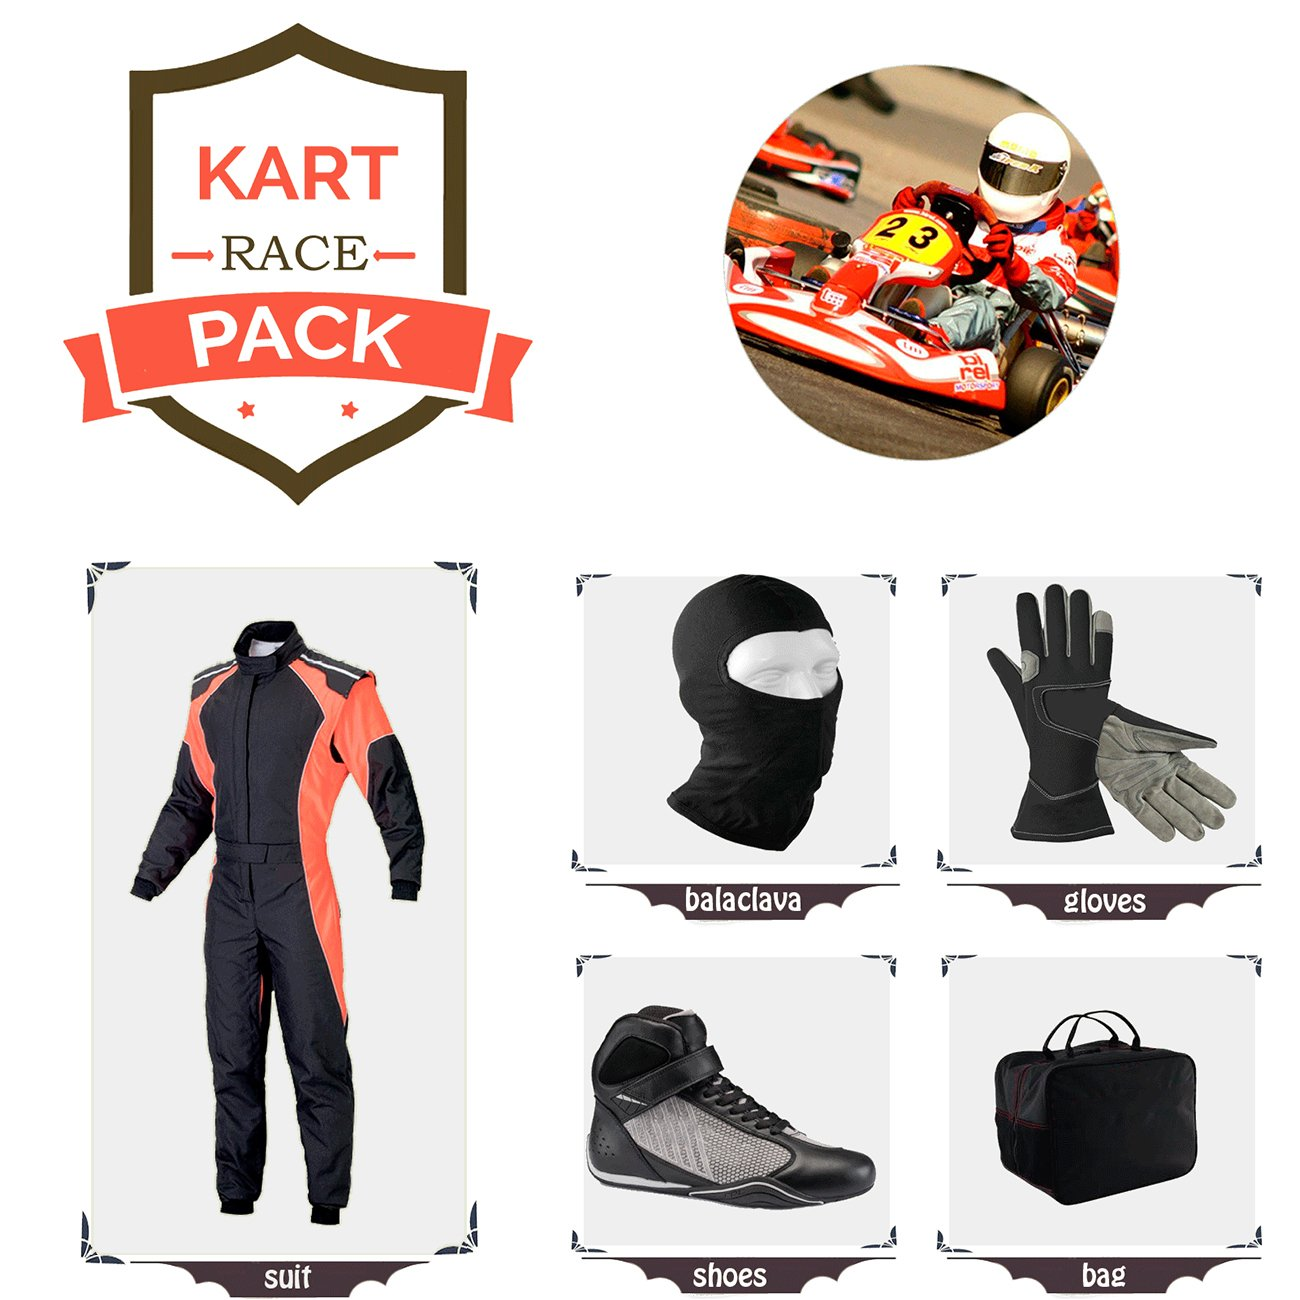 Sports Blue Go Kart Racing Suit Suit,Gloves,Balaclava and Shoes Free Bag - Black with Orange Side Style